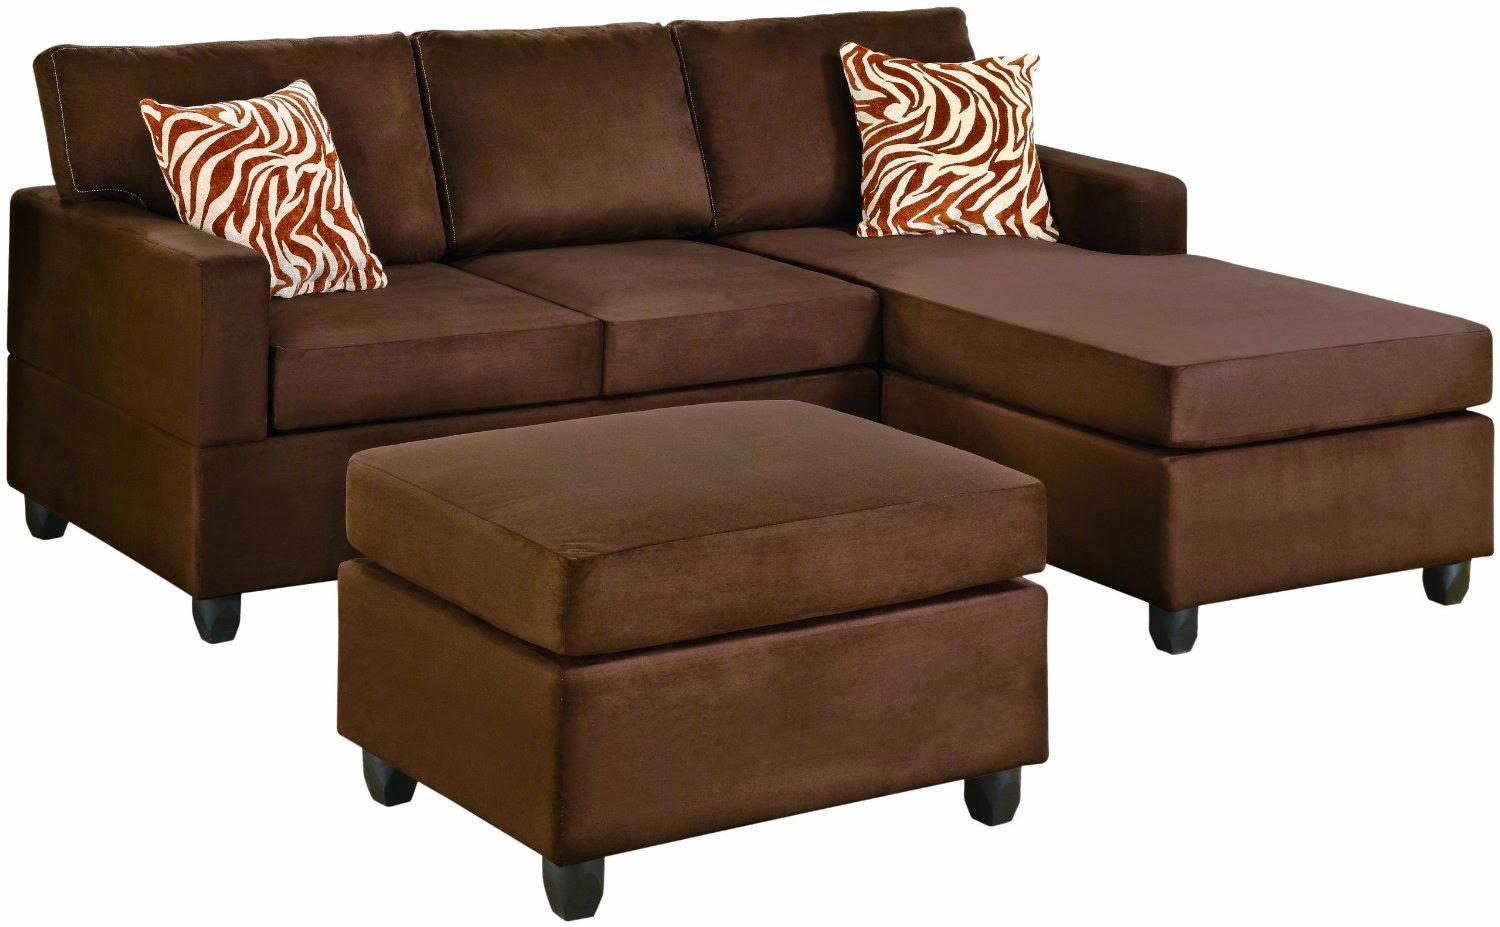 Couch with chaise for 3 piece microfiber sectional sofa with chaise